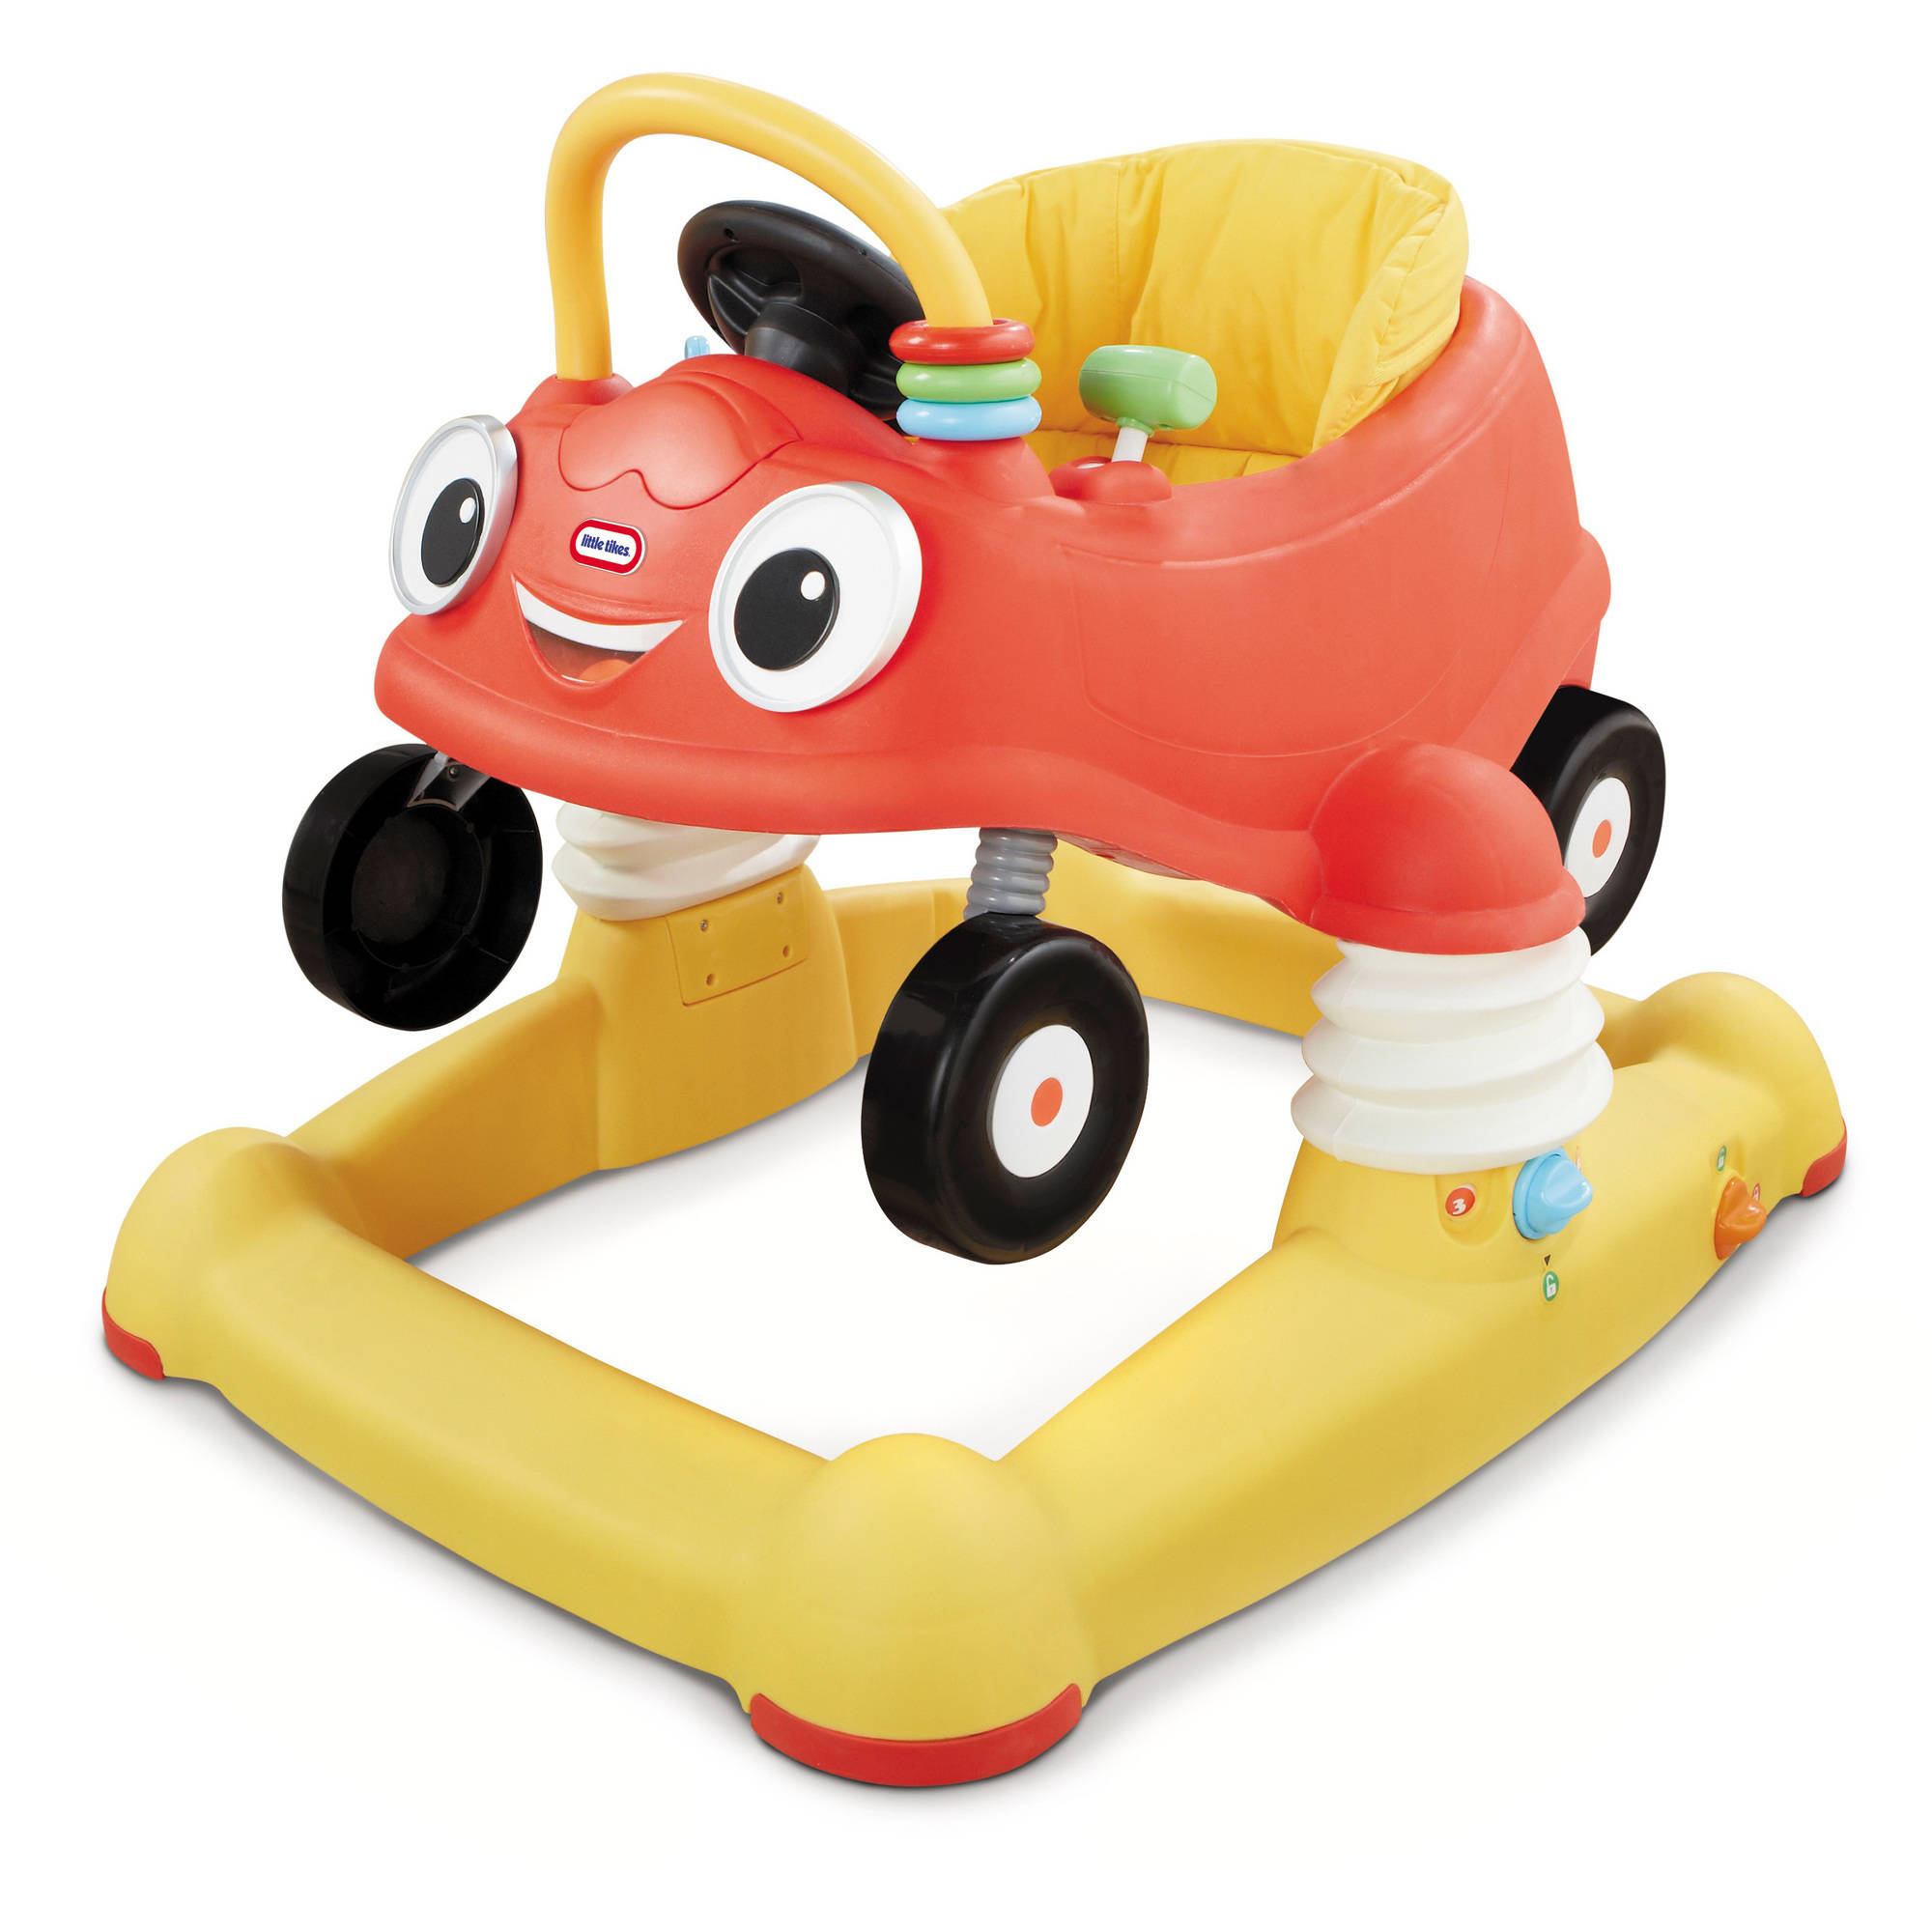 Little Tikes Cozy Coupe 3-in-1 Baby Walker, Bouncer & Mobile Entertainer